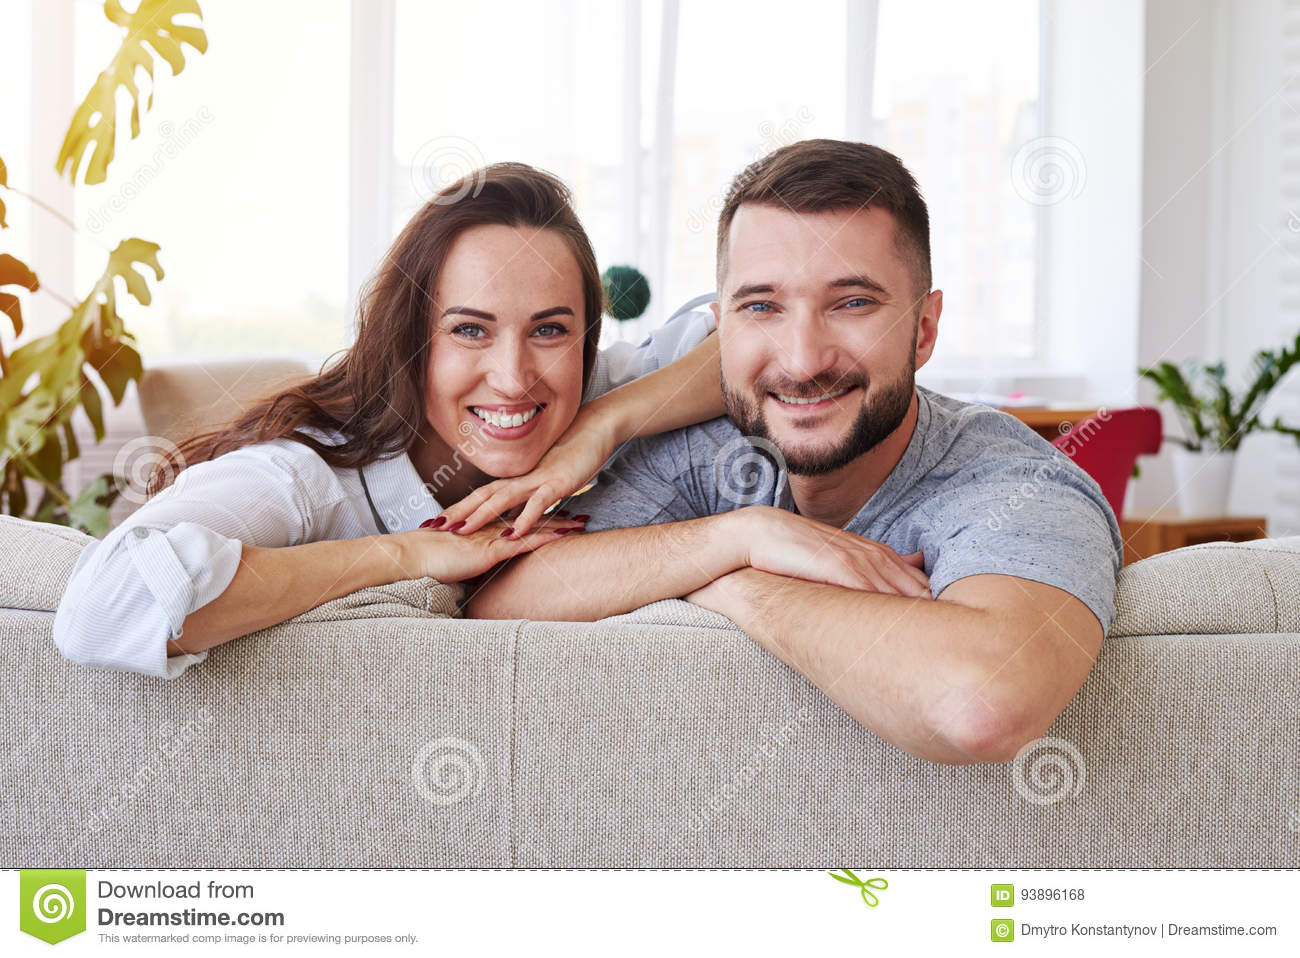 Download Gorgeous Wife And Husband Spending Free Time Relaxing On Sofa Stock Photo Image Of